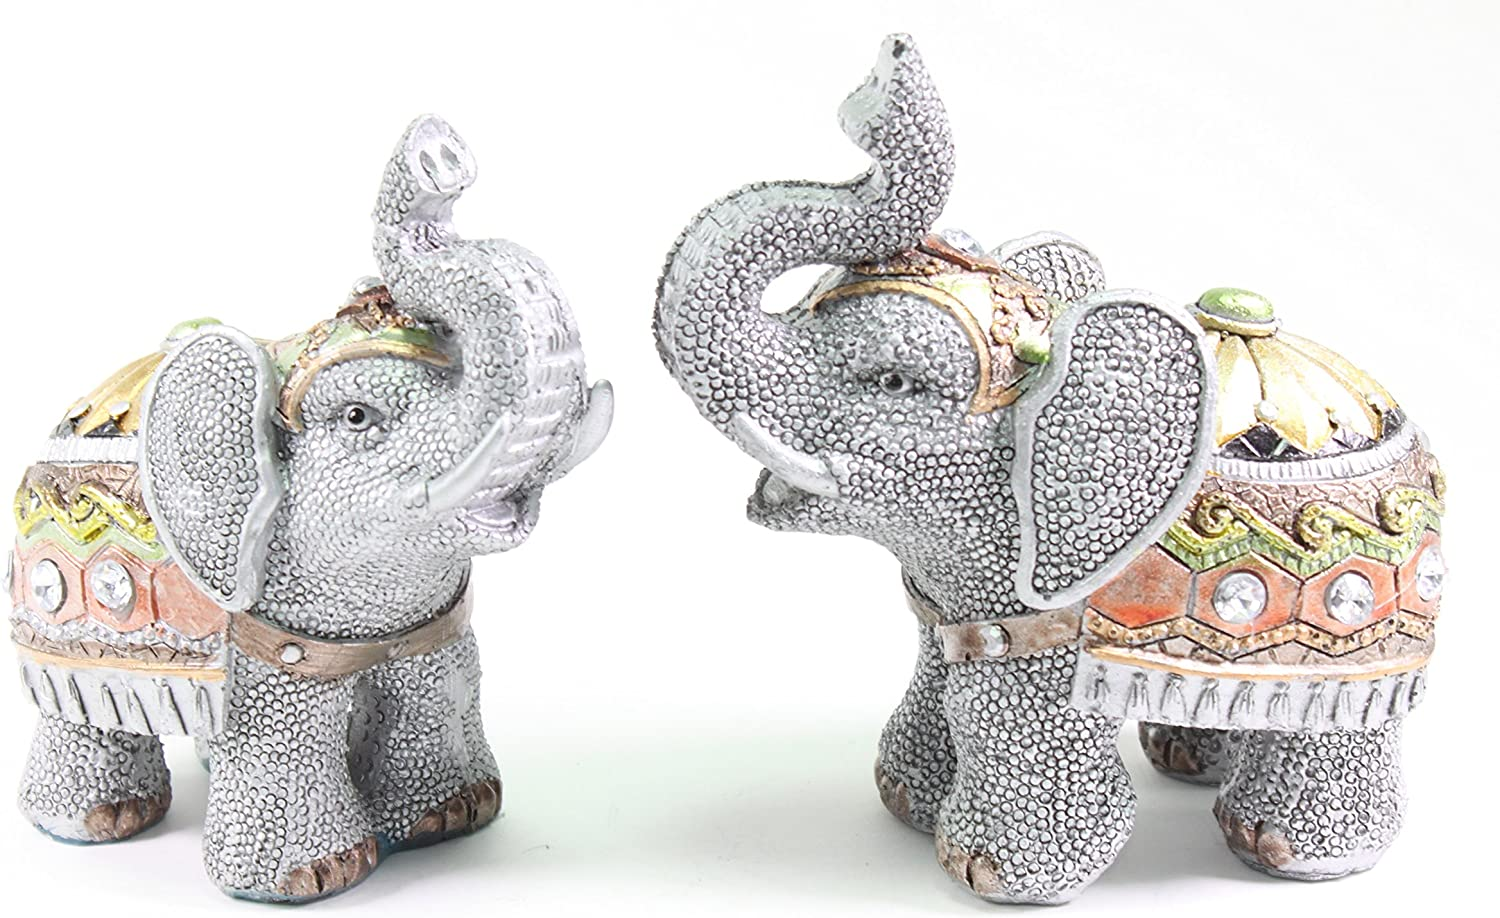 We pay your sales tax Feng Shui Small Elephants Wealth Lucky Figurine Home Decor Housewarming Gift Set 2